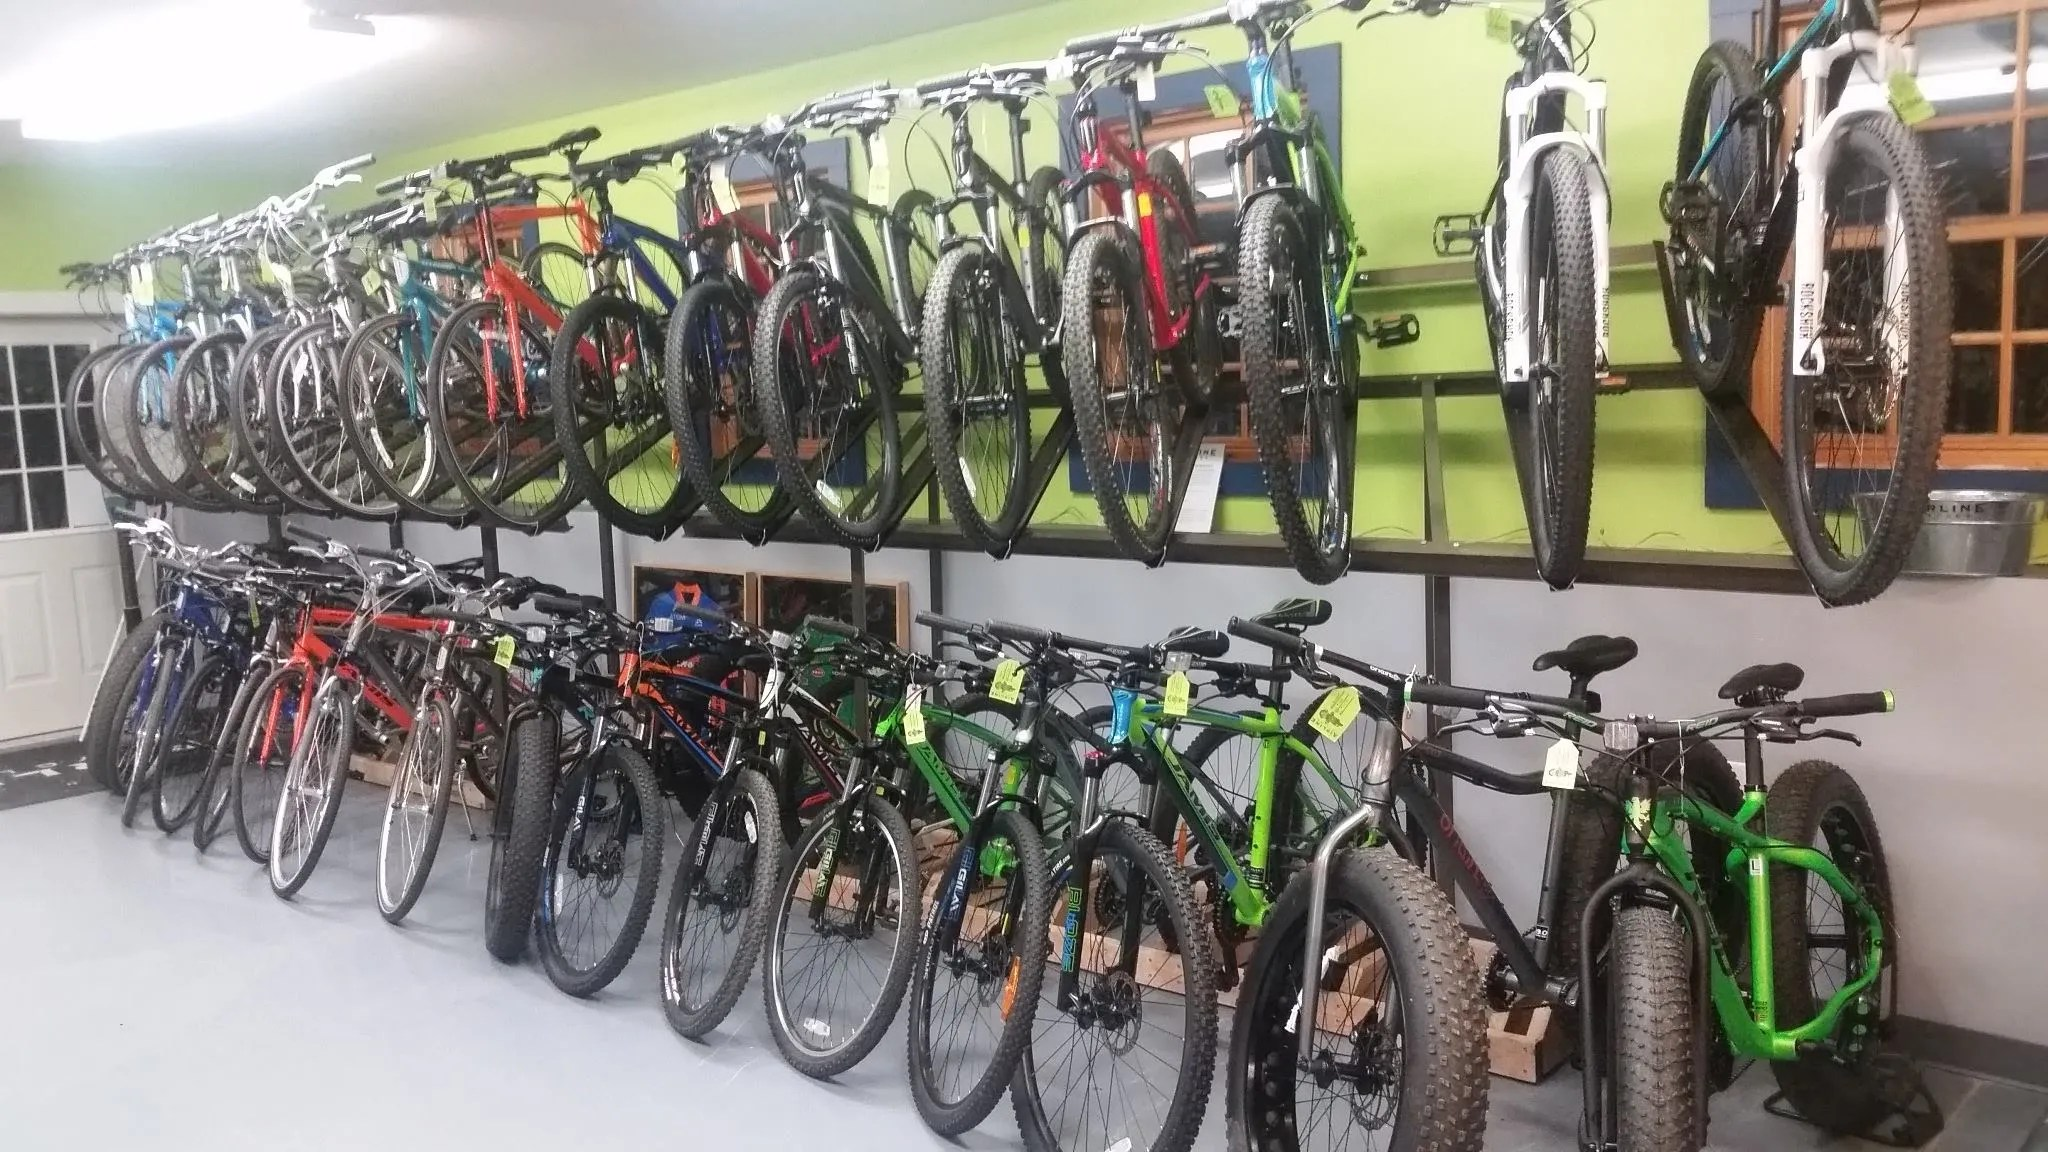 Mount Bike Shop About Us Bike Shop Airline Cycles East Hampton Ct